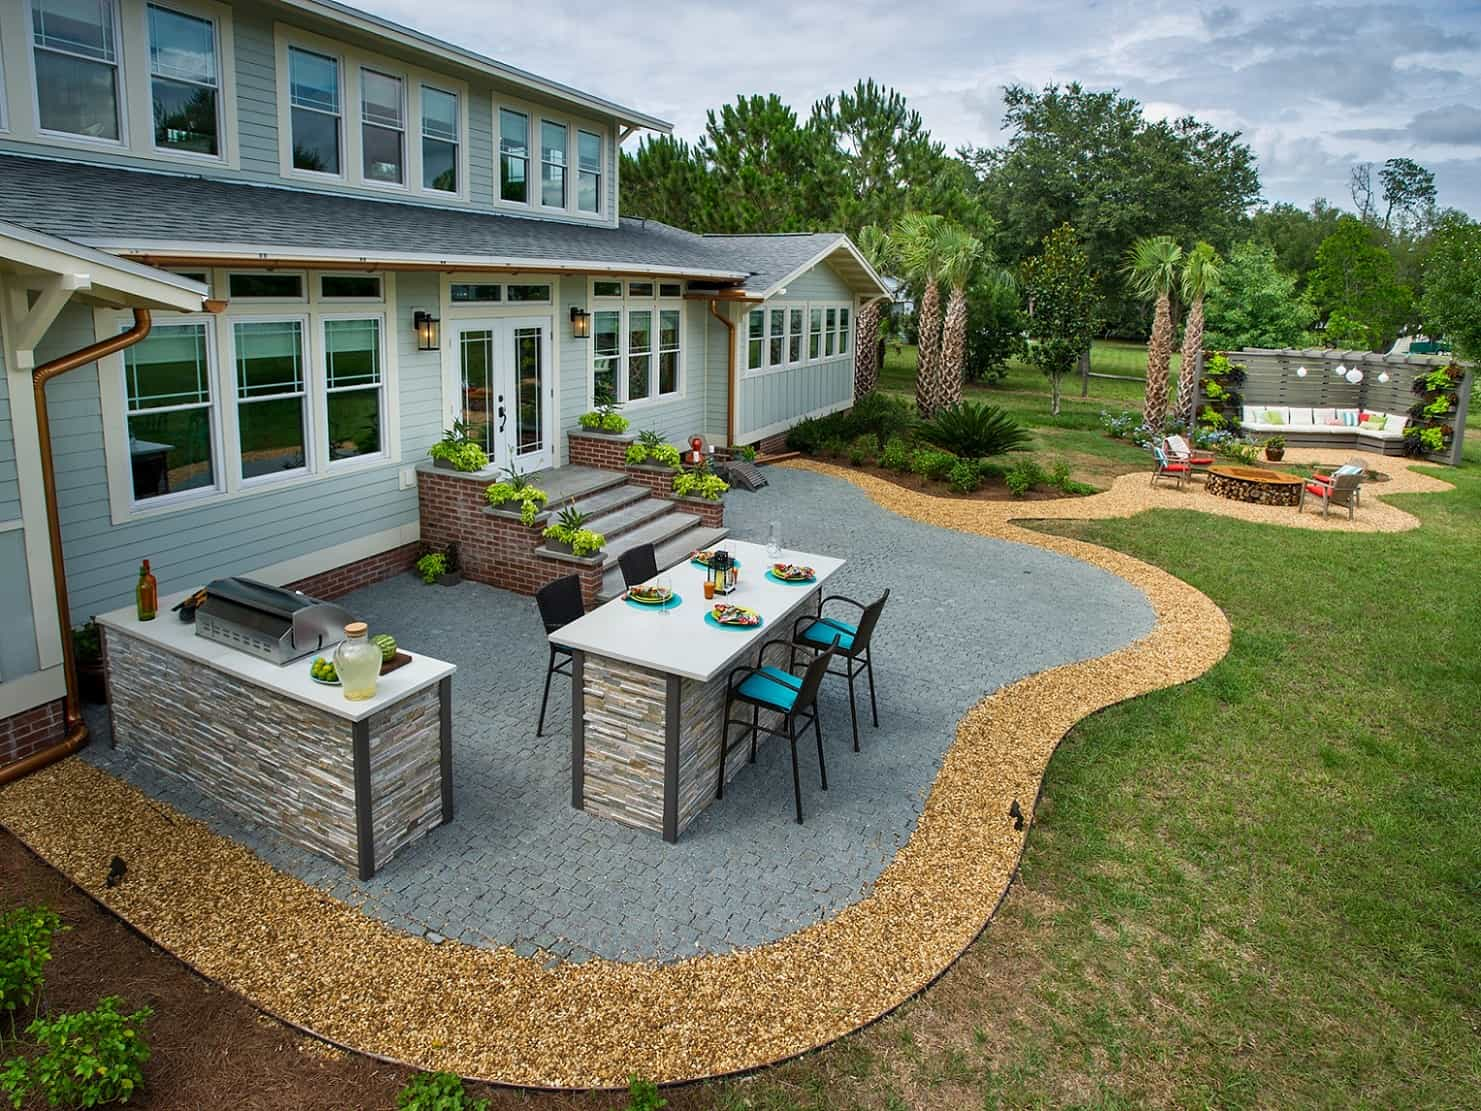 Fabulous Patios Designs That Will Leave You Speechless ... on Affordable Backyard Ideas id=74872